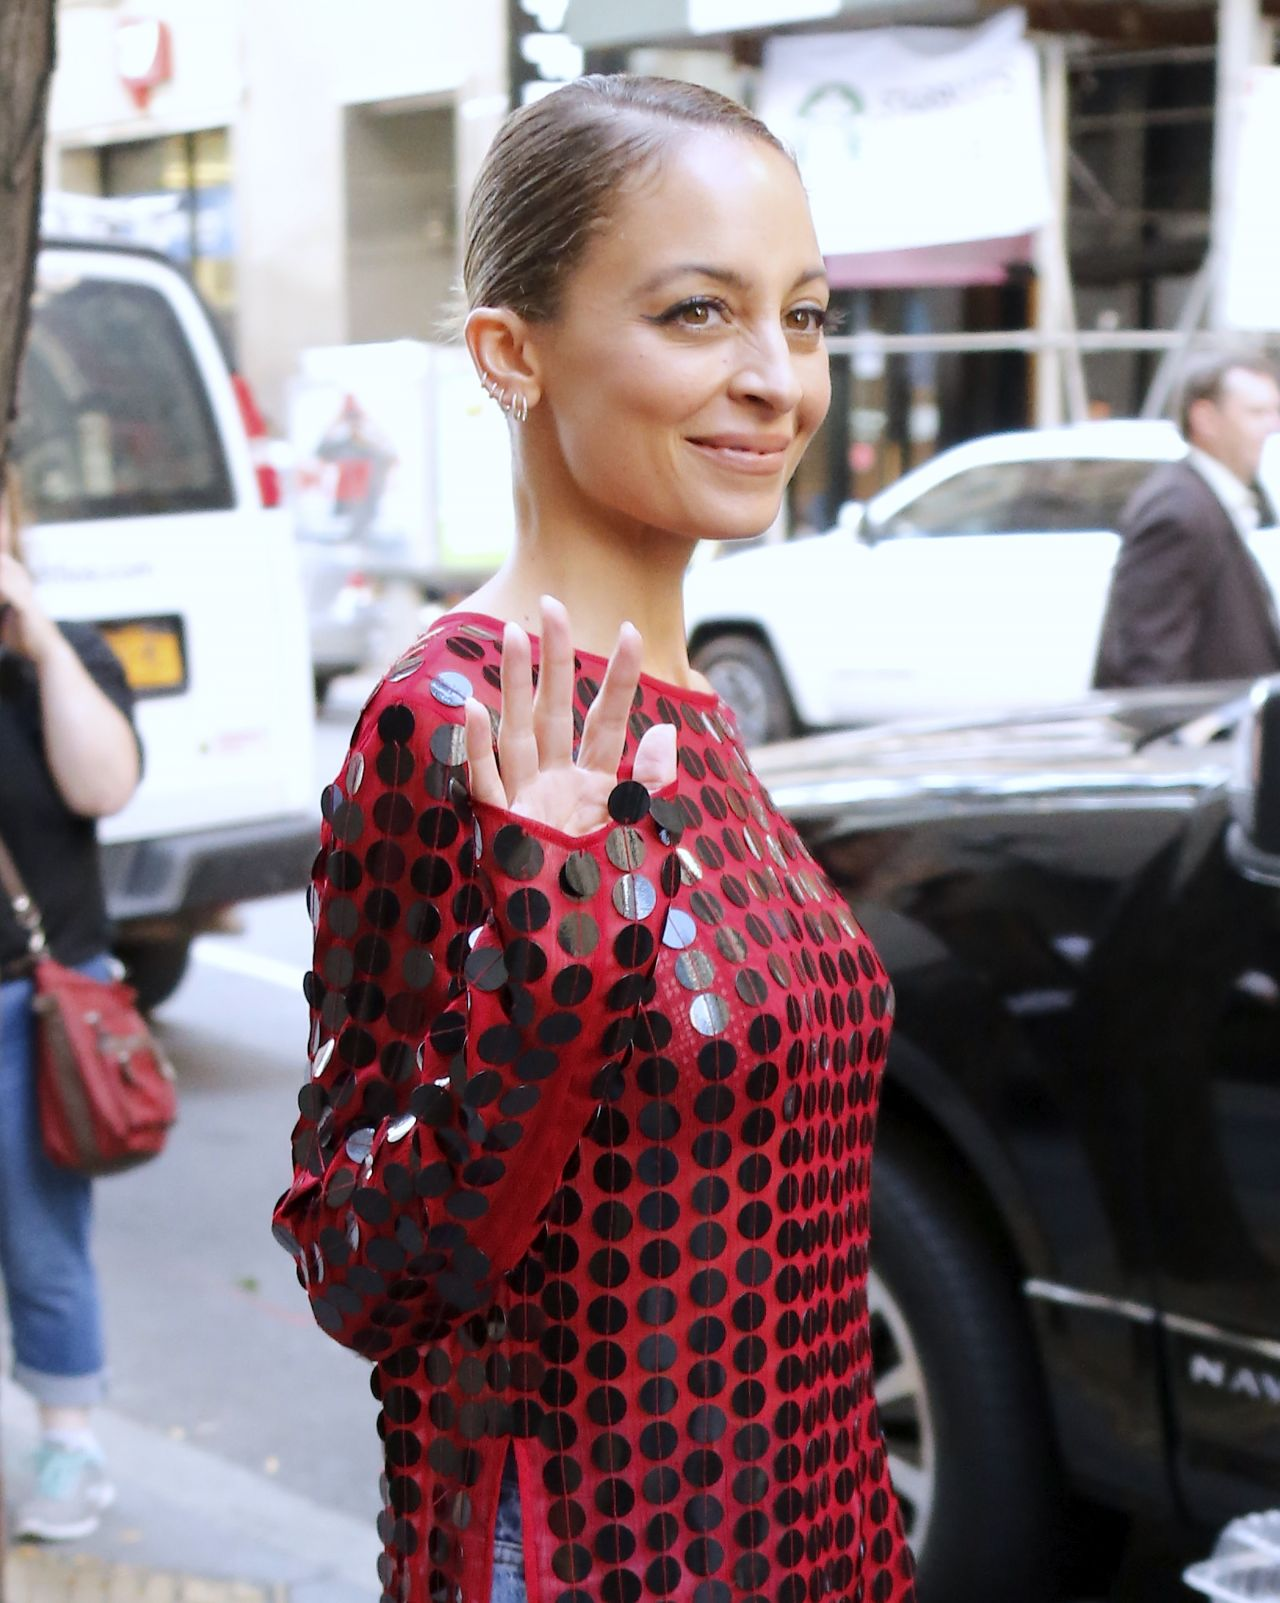 Nicole richie leaves today tv show in new york new foto